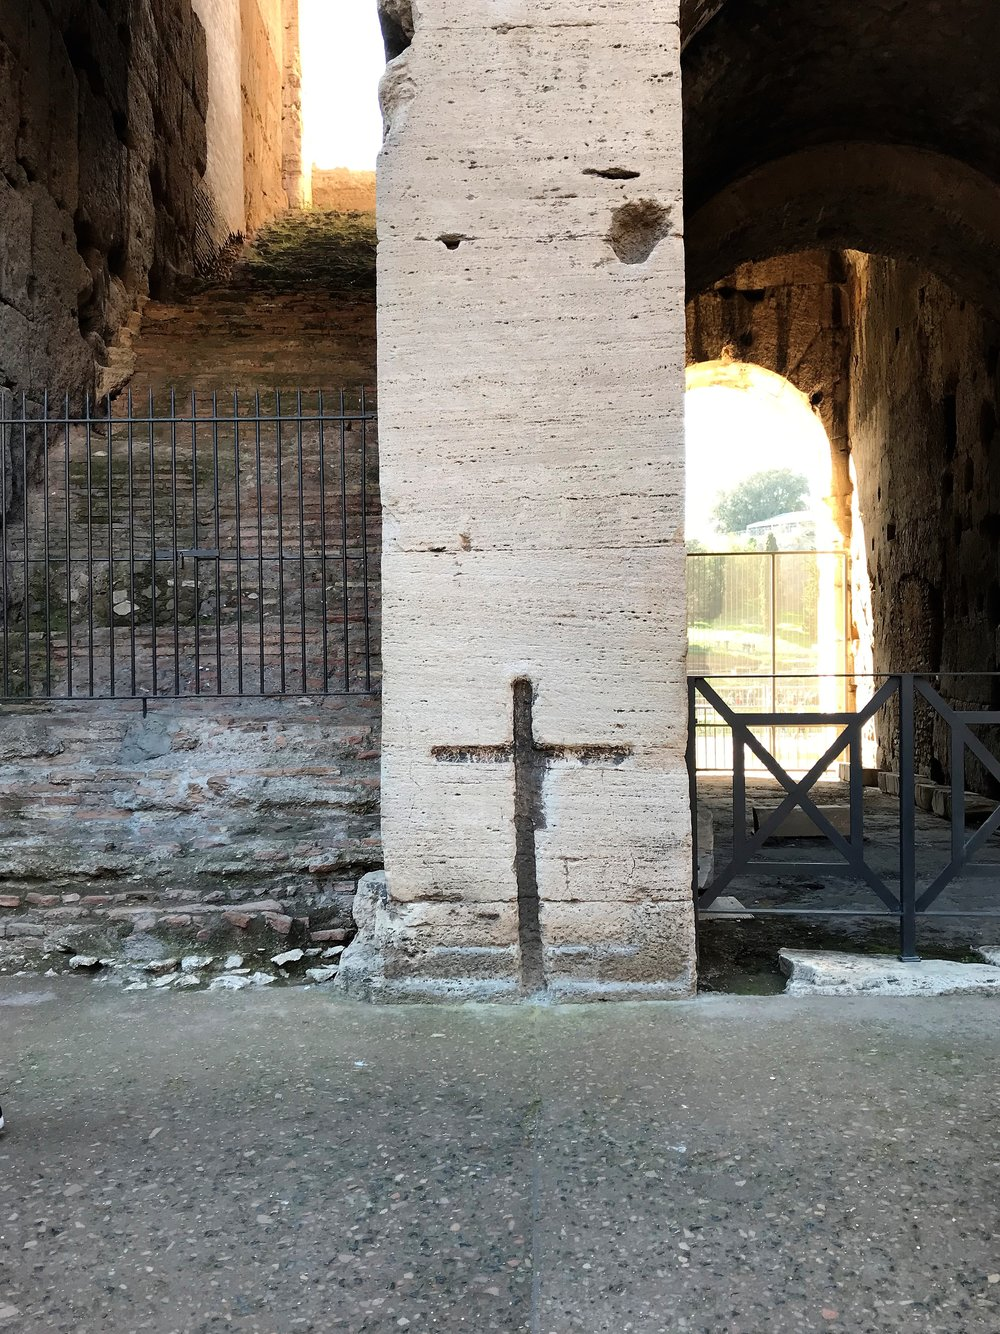 Cross engraved in The Colosseum